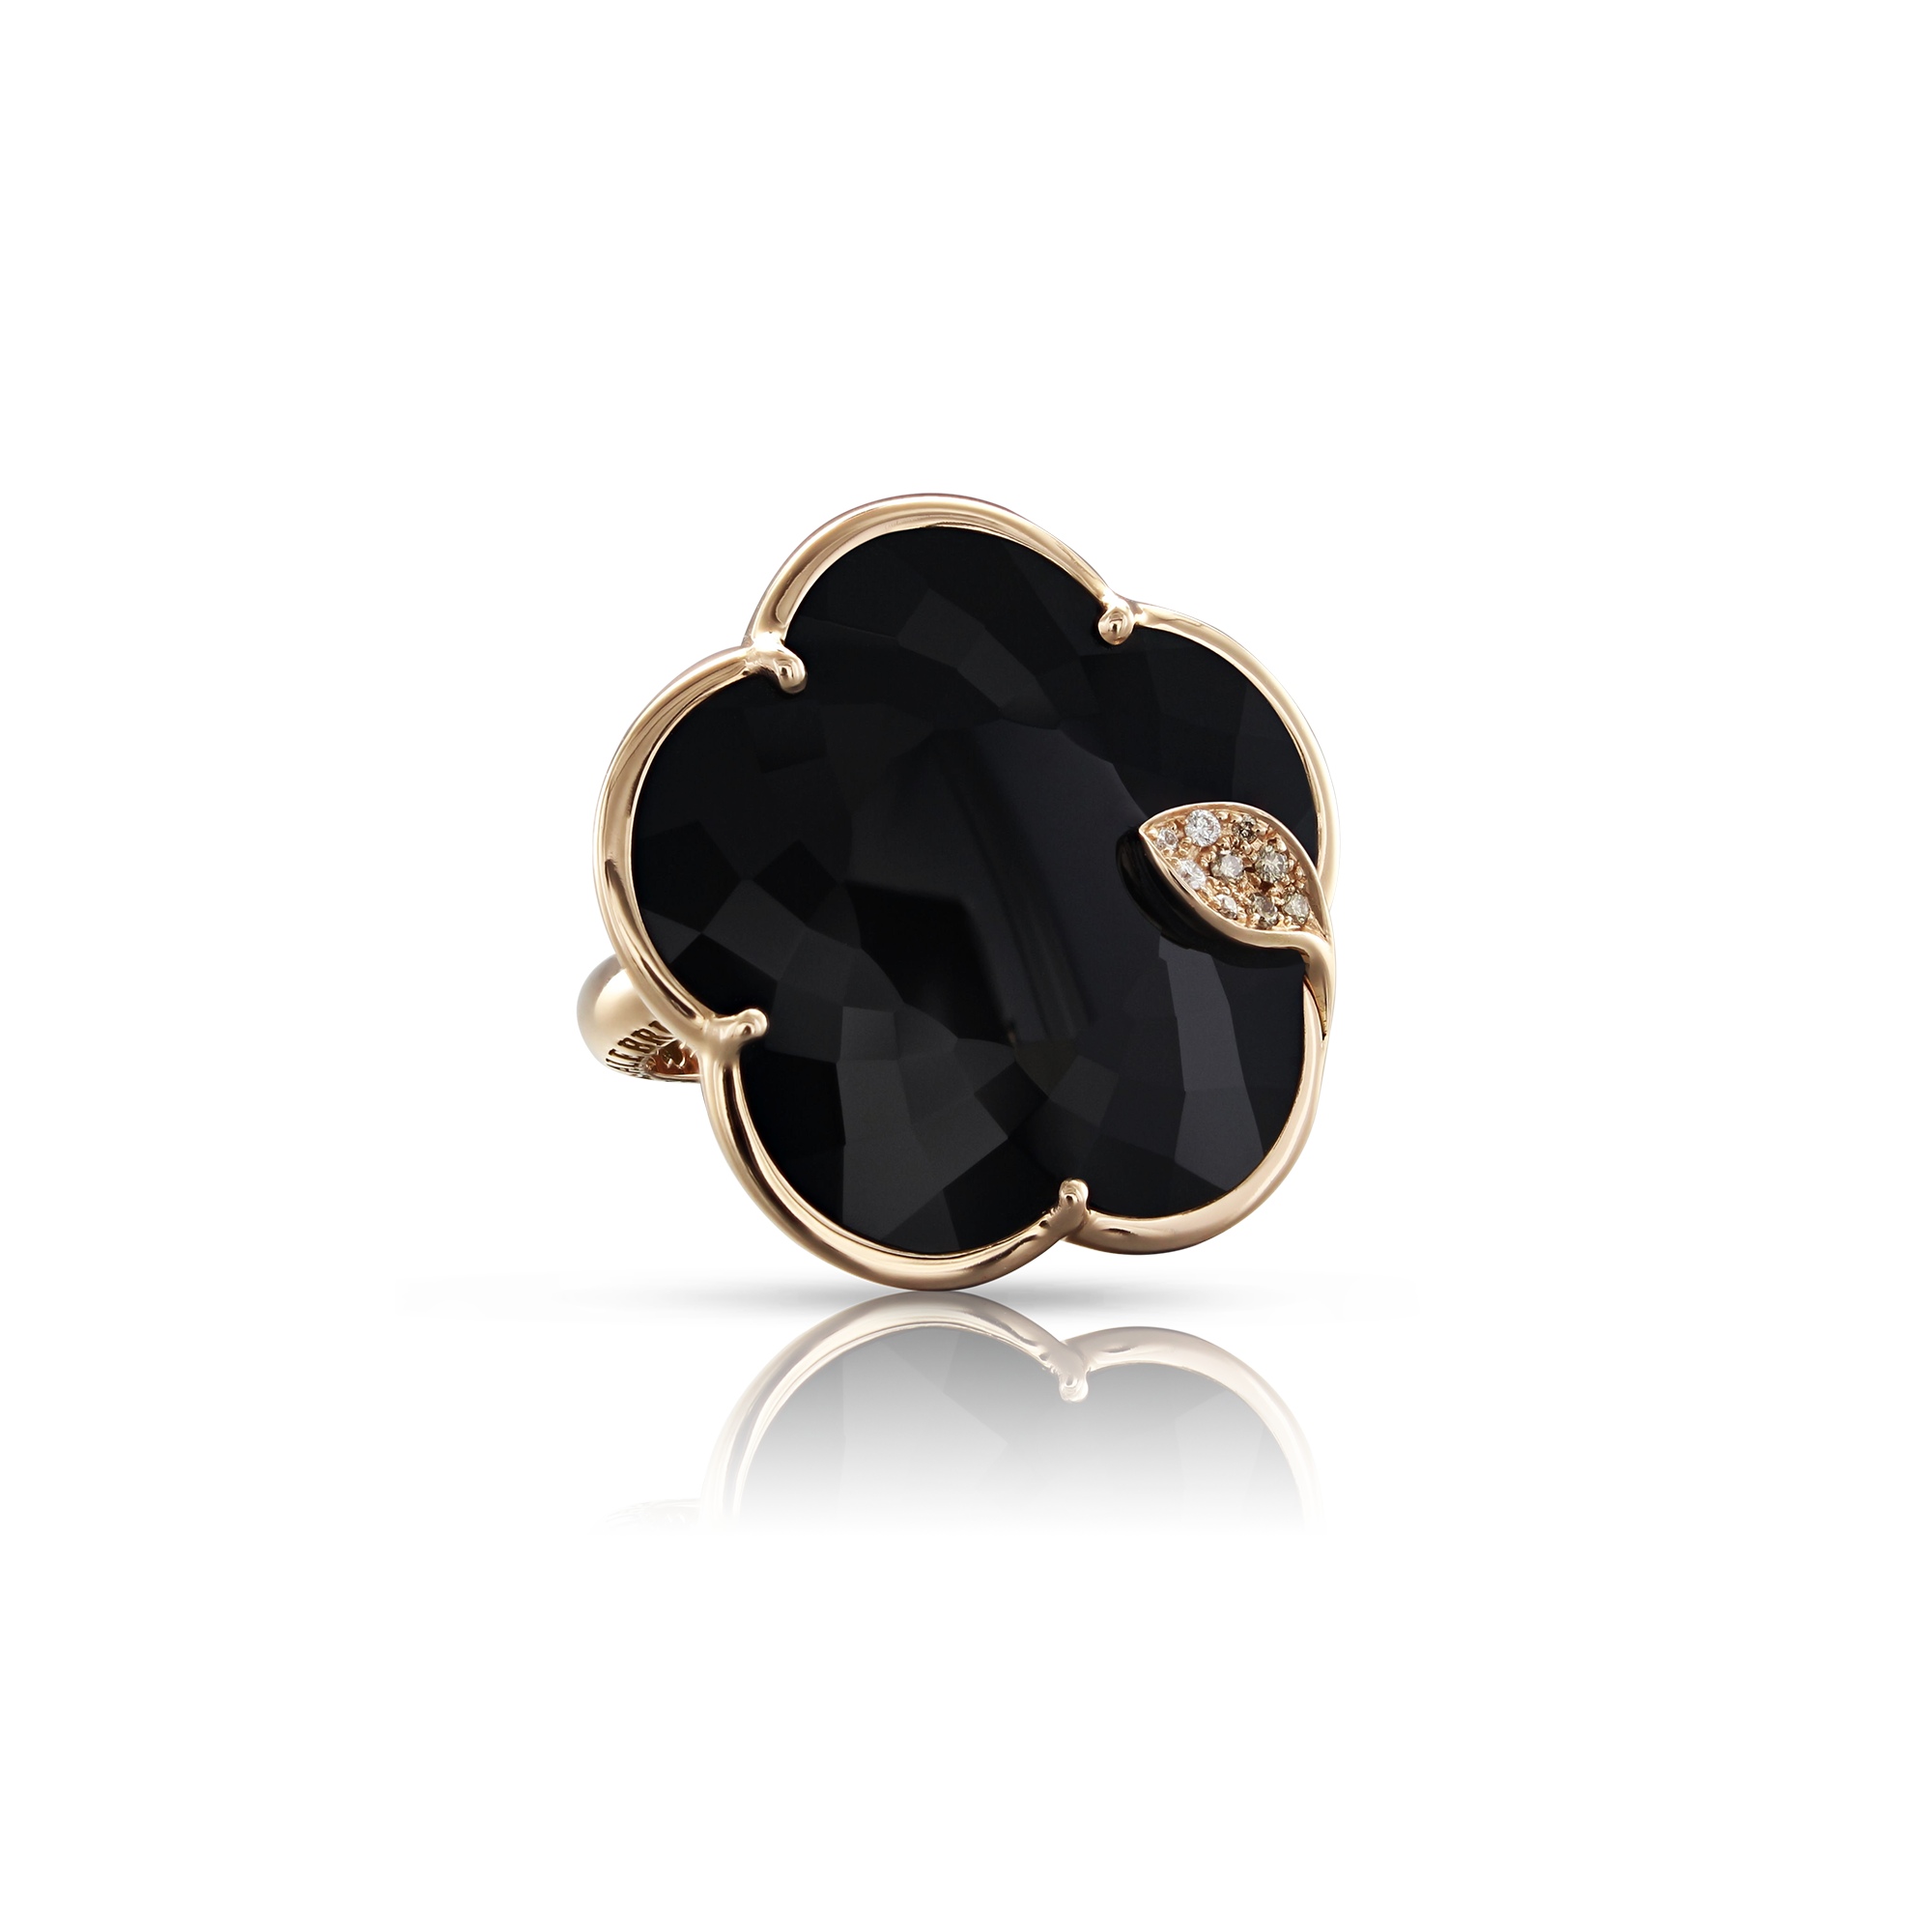 NEW 18k Rose Gold Ton Joli Ring with Onyx, White and Champagne Diamonds